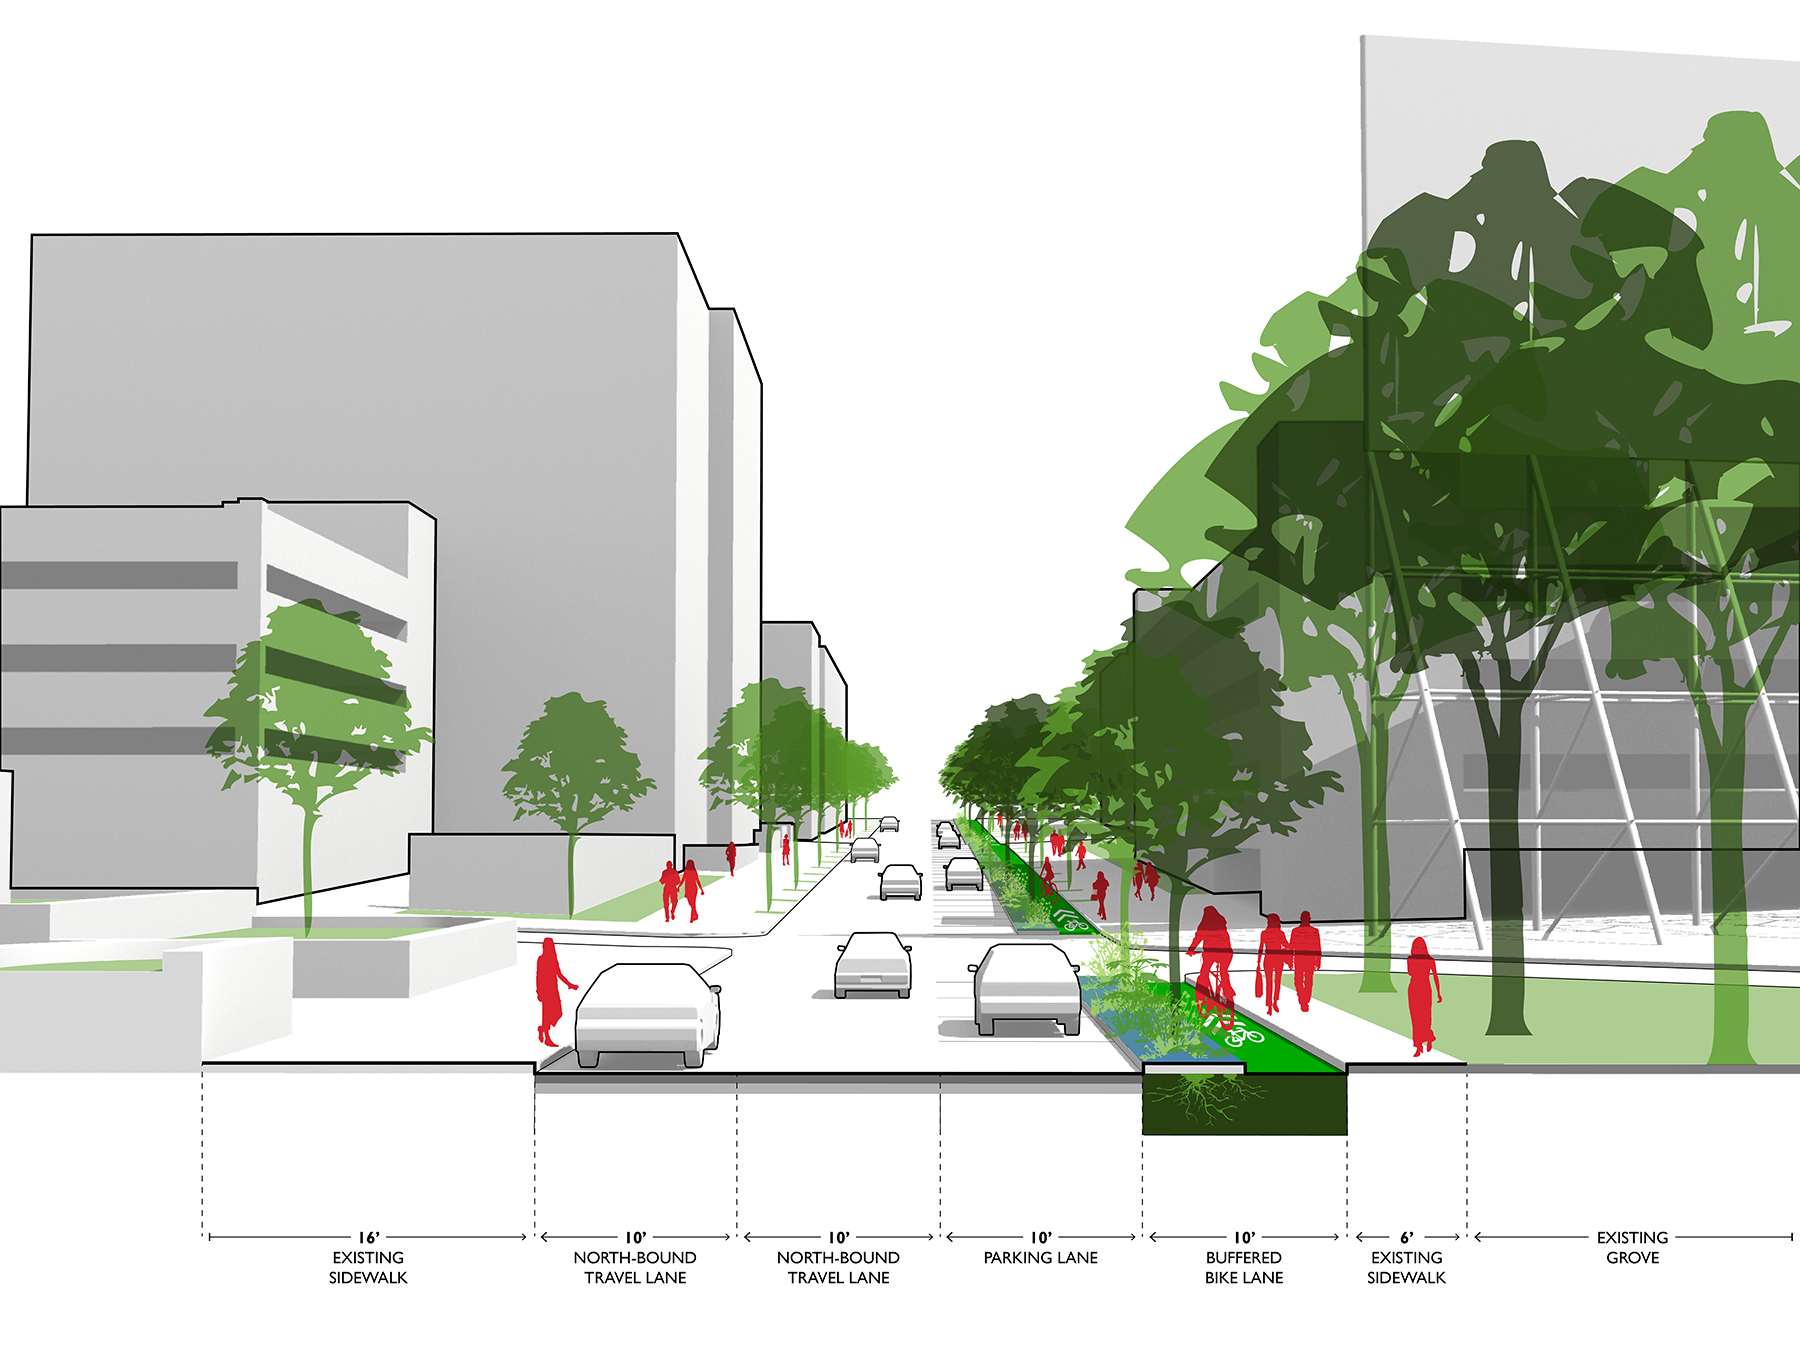 Atlanta_plan_Green Street Section Perspective-Central Ave-Bike Lane_20170811-01.jpg